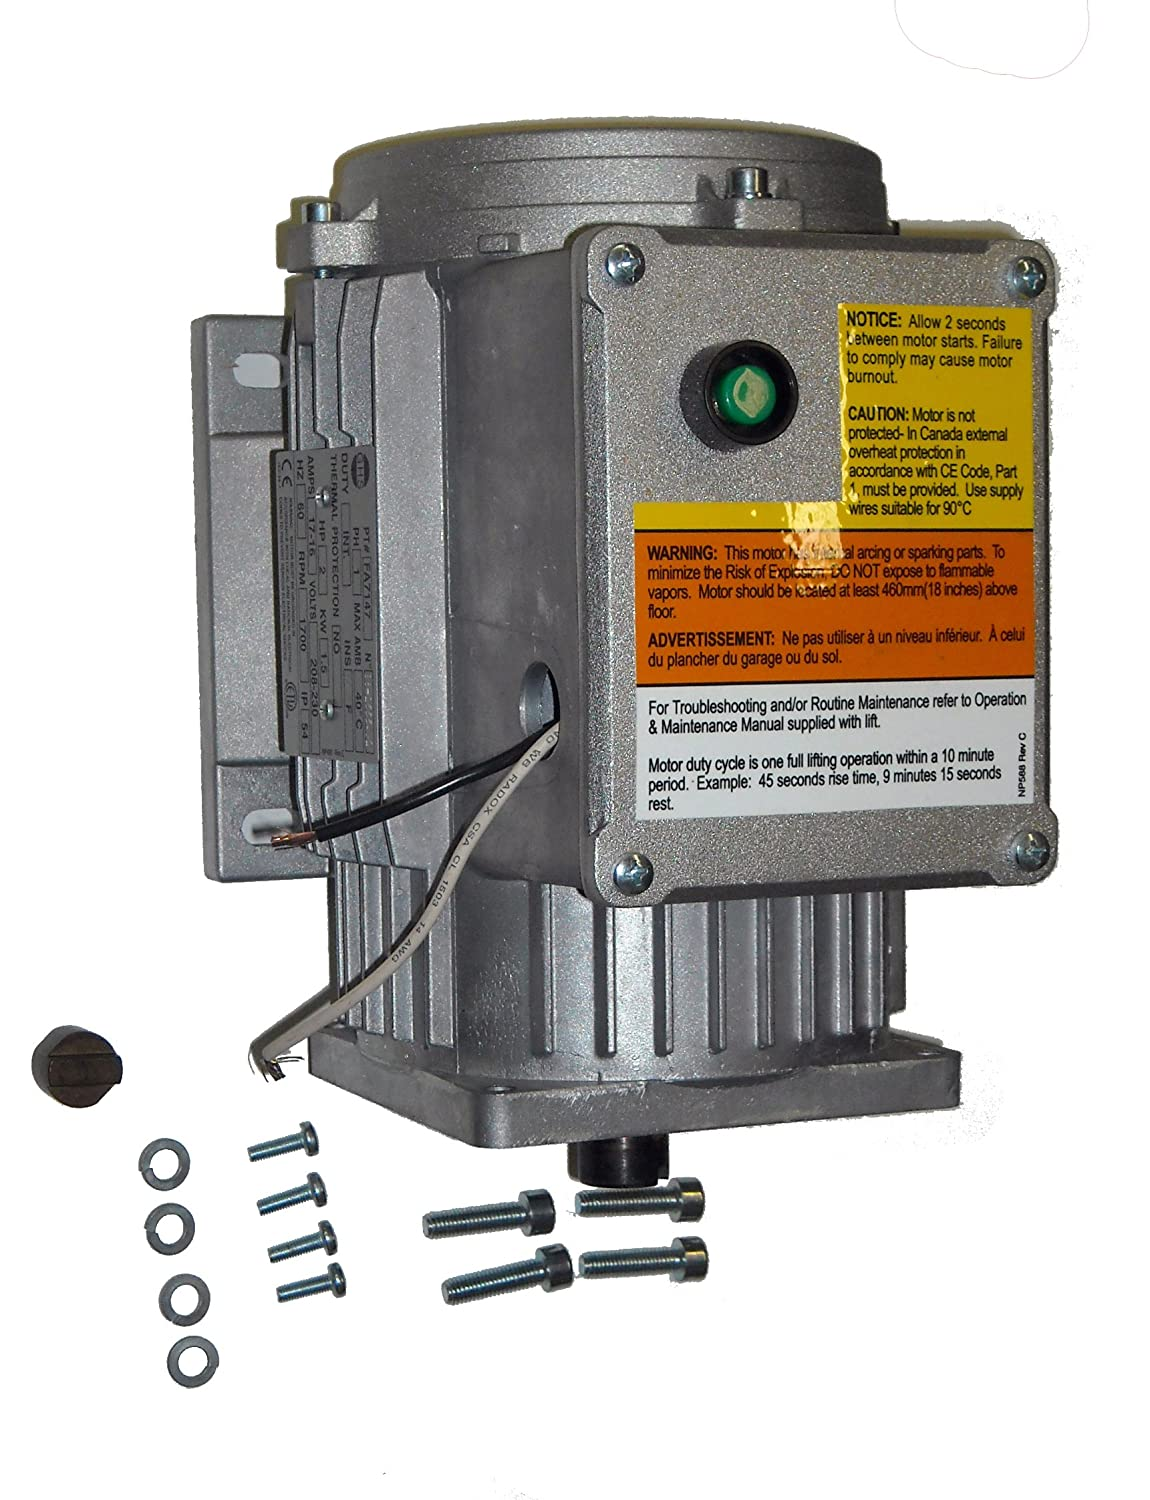 Rotary Lift Forward Power Unit Motor For Automobile Switch Wiring Diagram Lifts Fa7147k Automotive